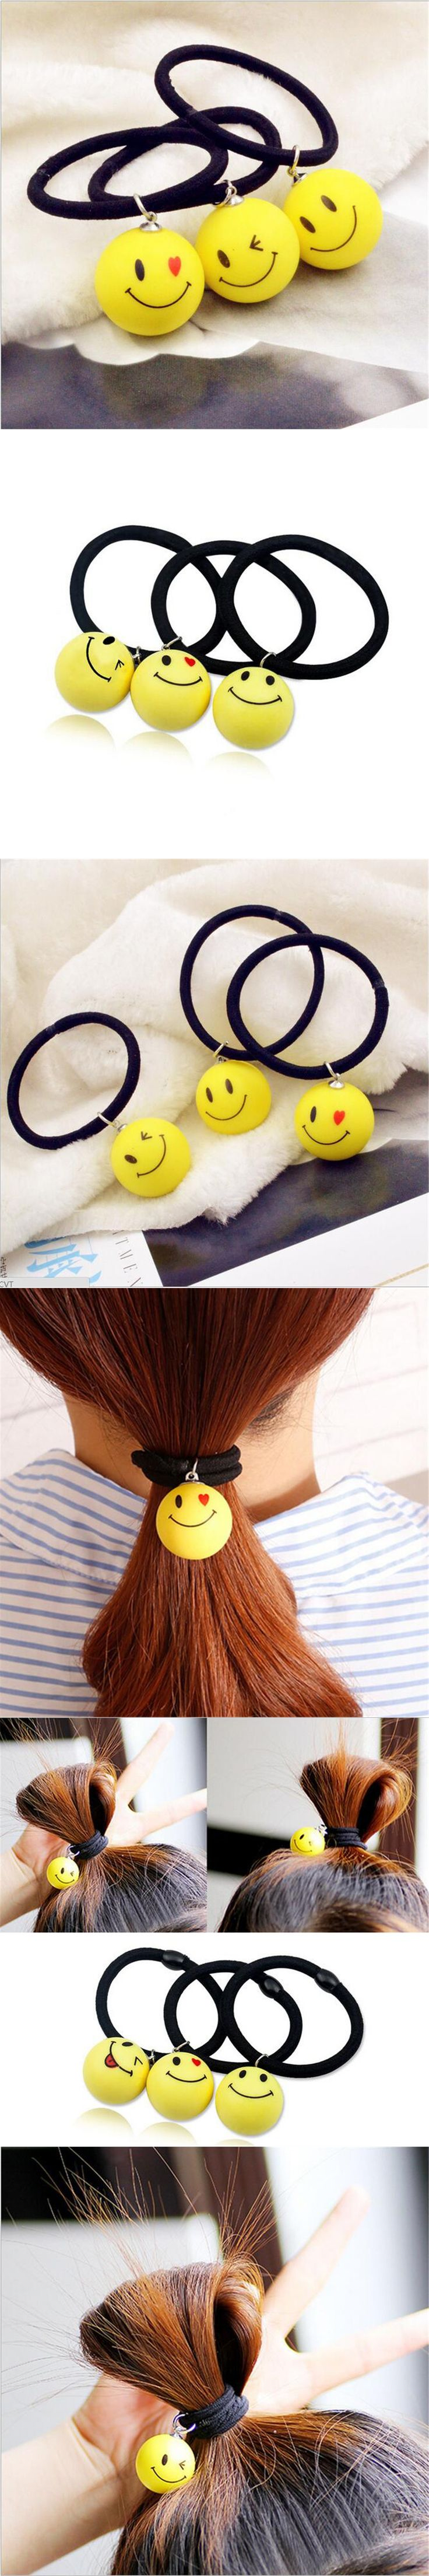 1 Pc New Fashion Cute Smile Face Elastic Hair Bands Headbands for Girls Kids Hairpins Emoji Hair Tie Headwear Hair Accessories